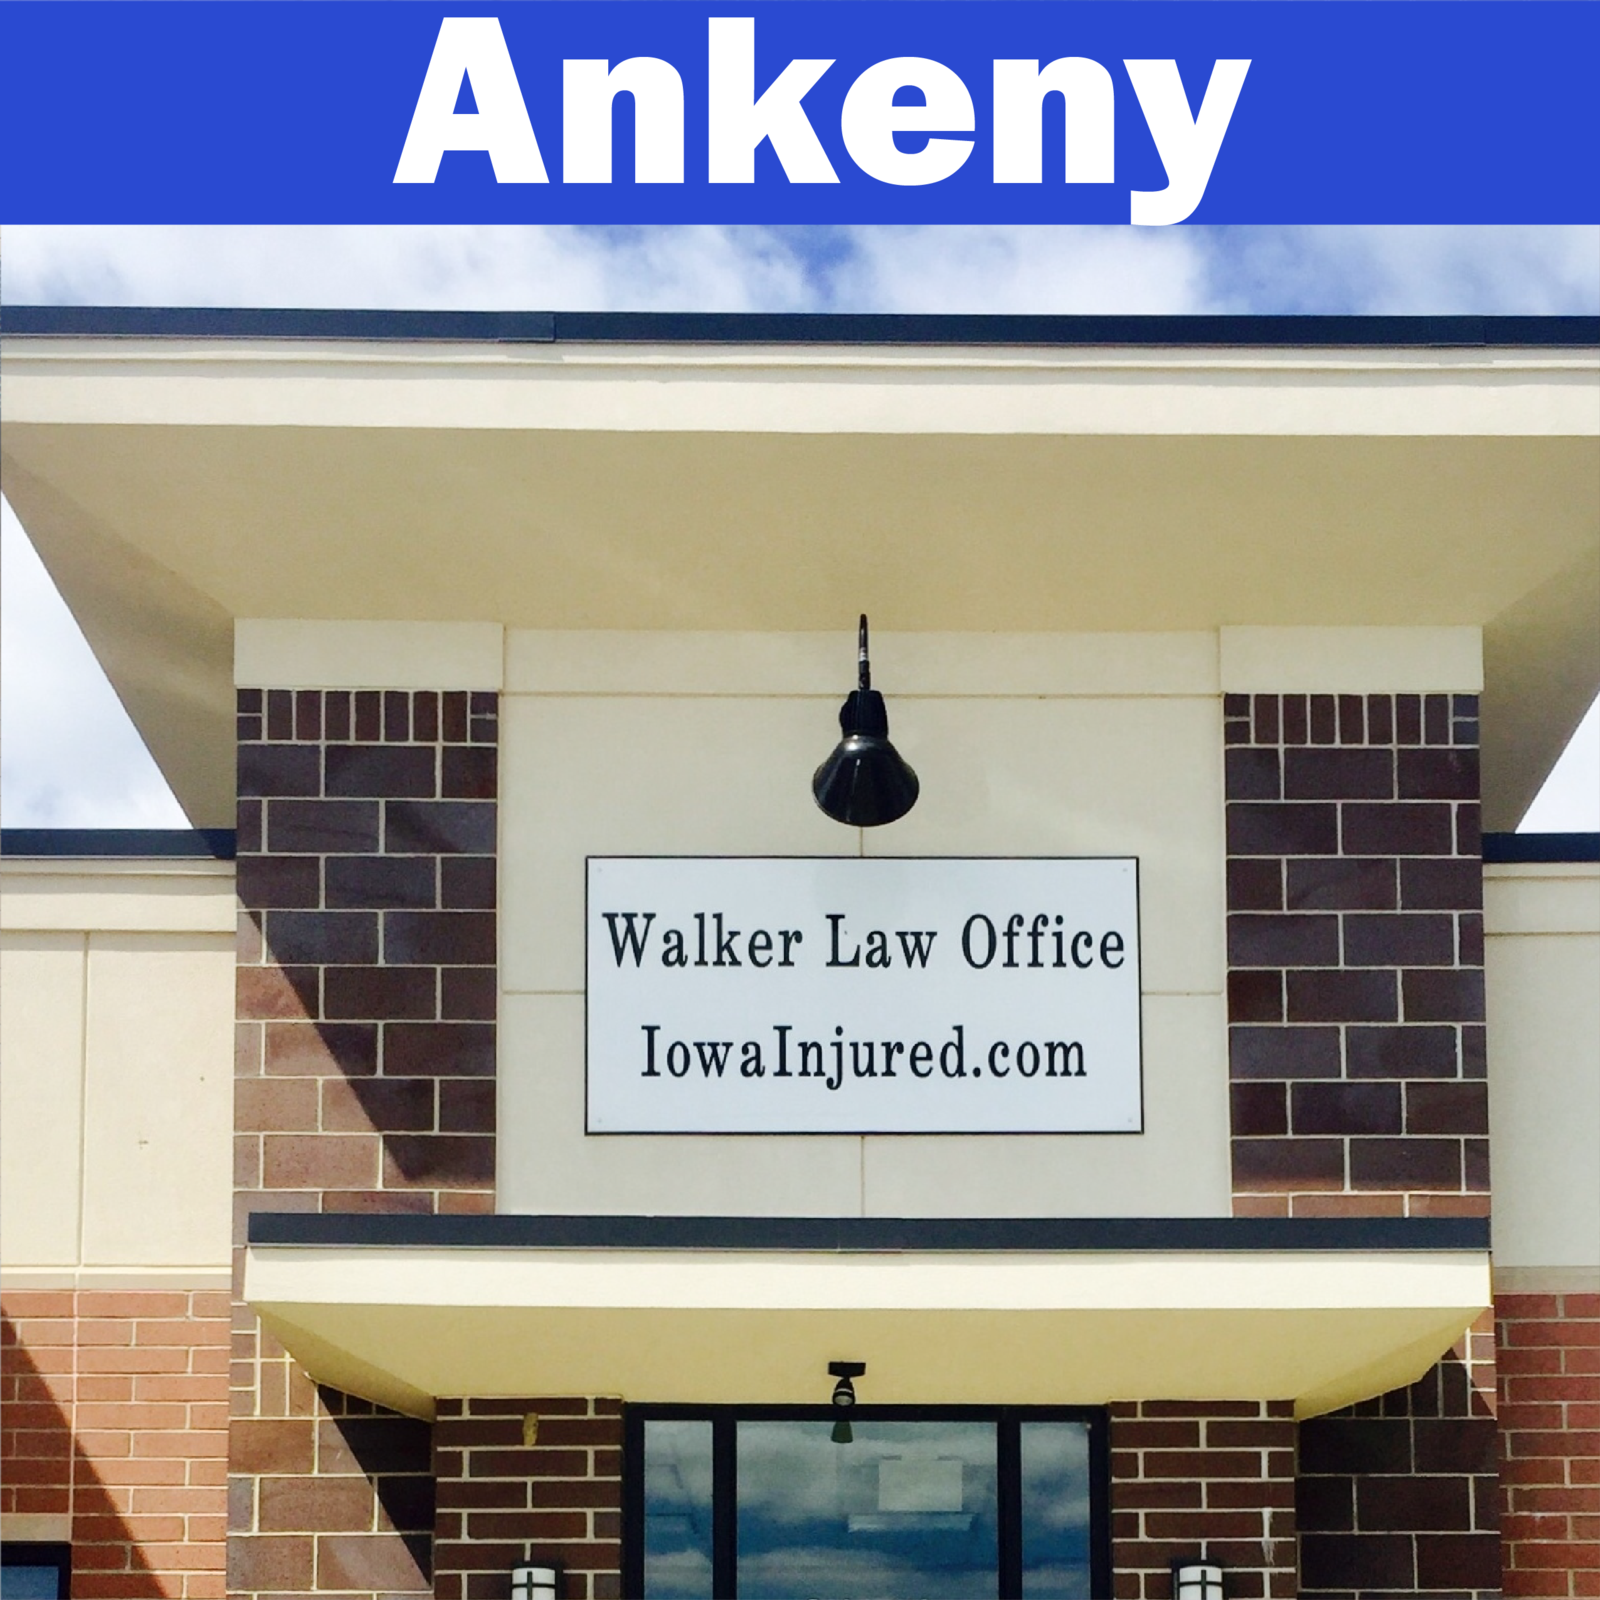 Walker law office sign in ankeny iowa